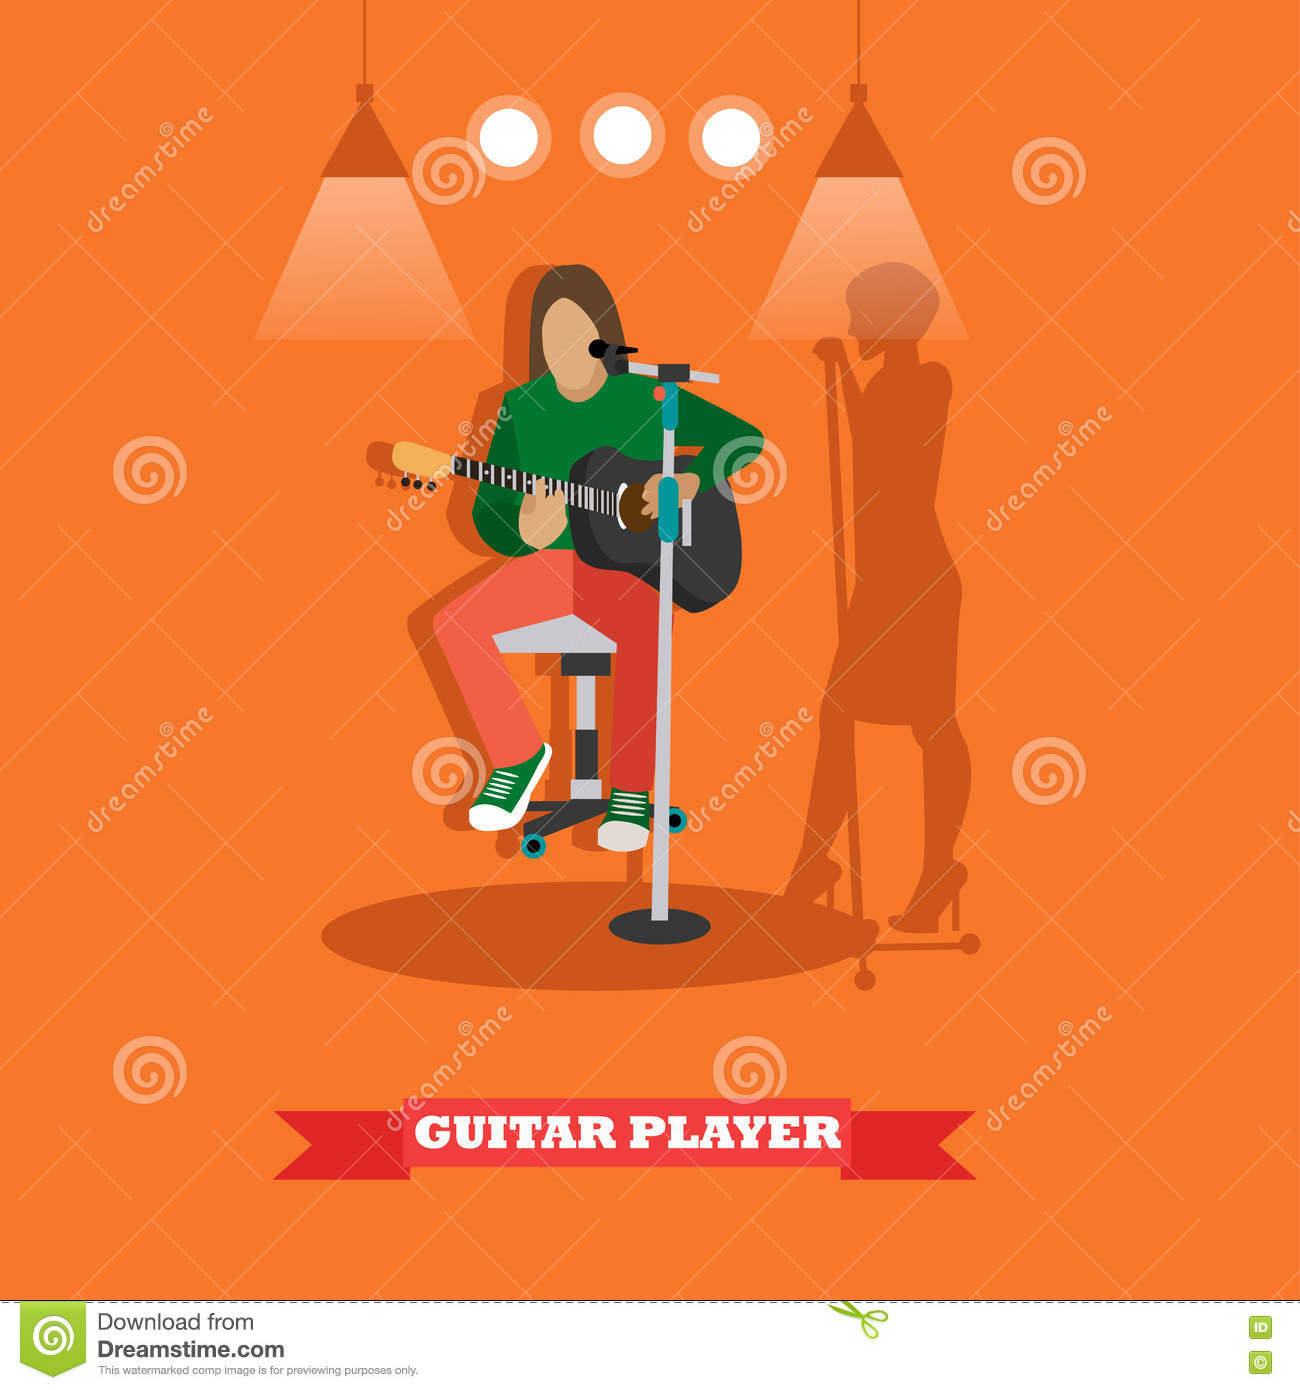 Country song guitarist playing guitar. Music rock band concept banner. Vector illustration in flat style design